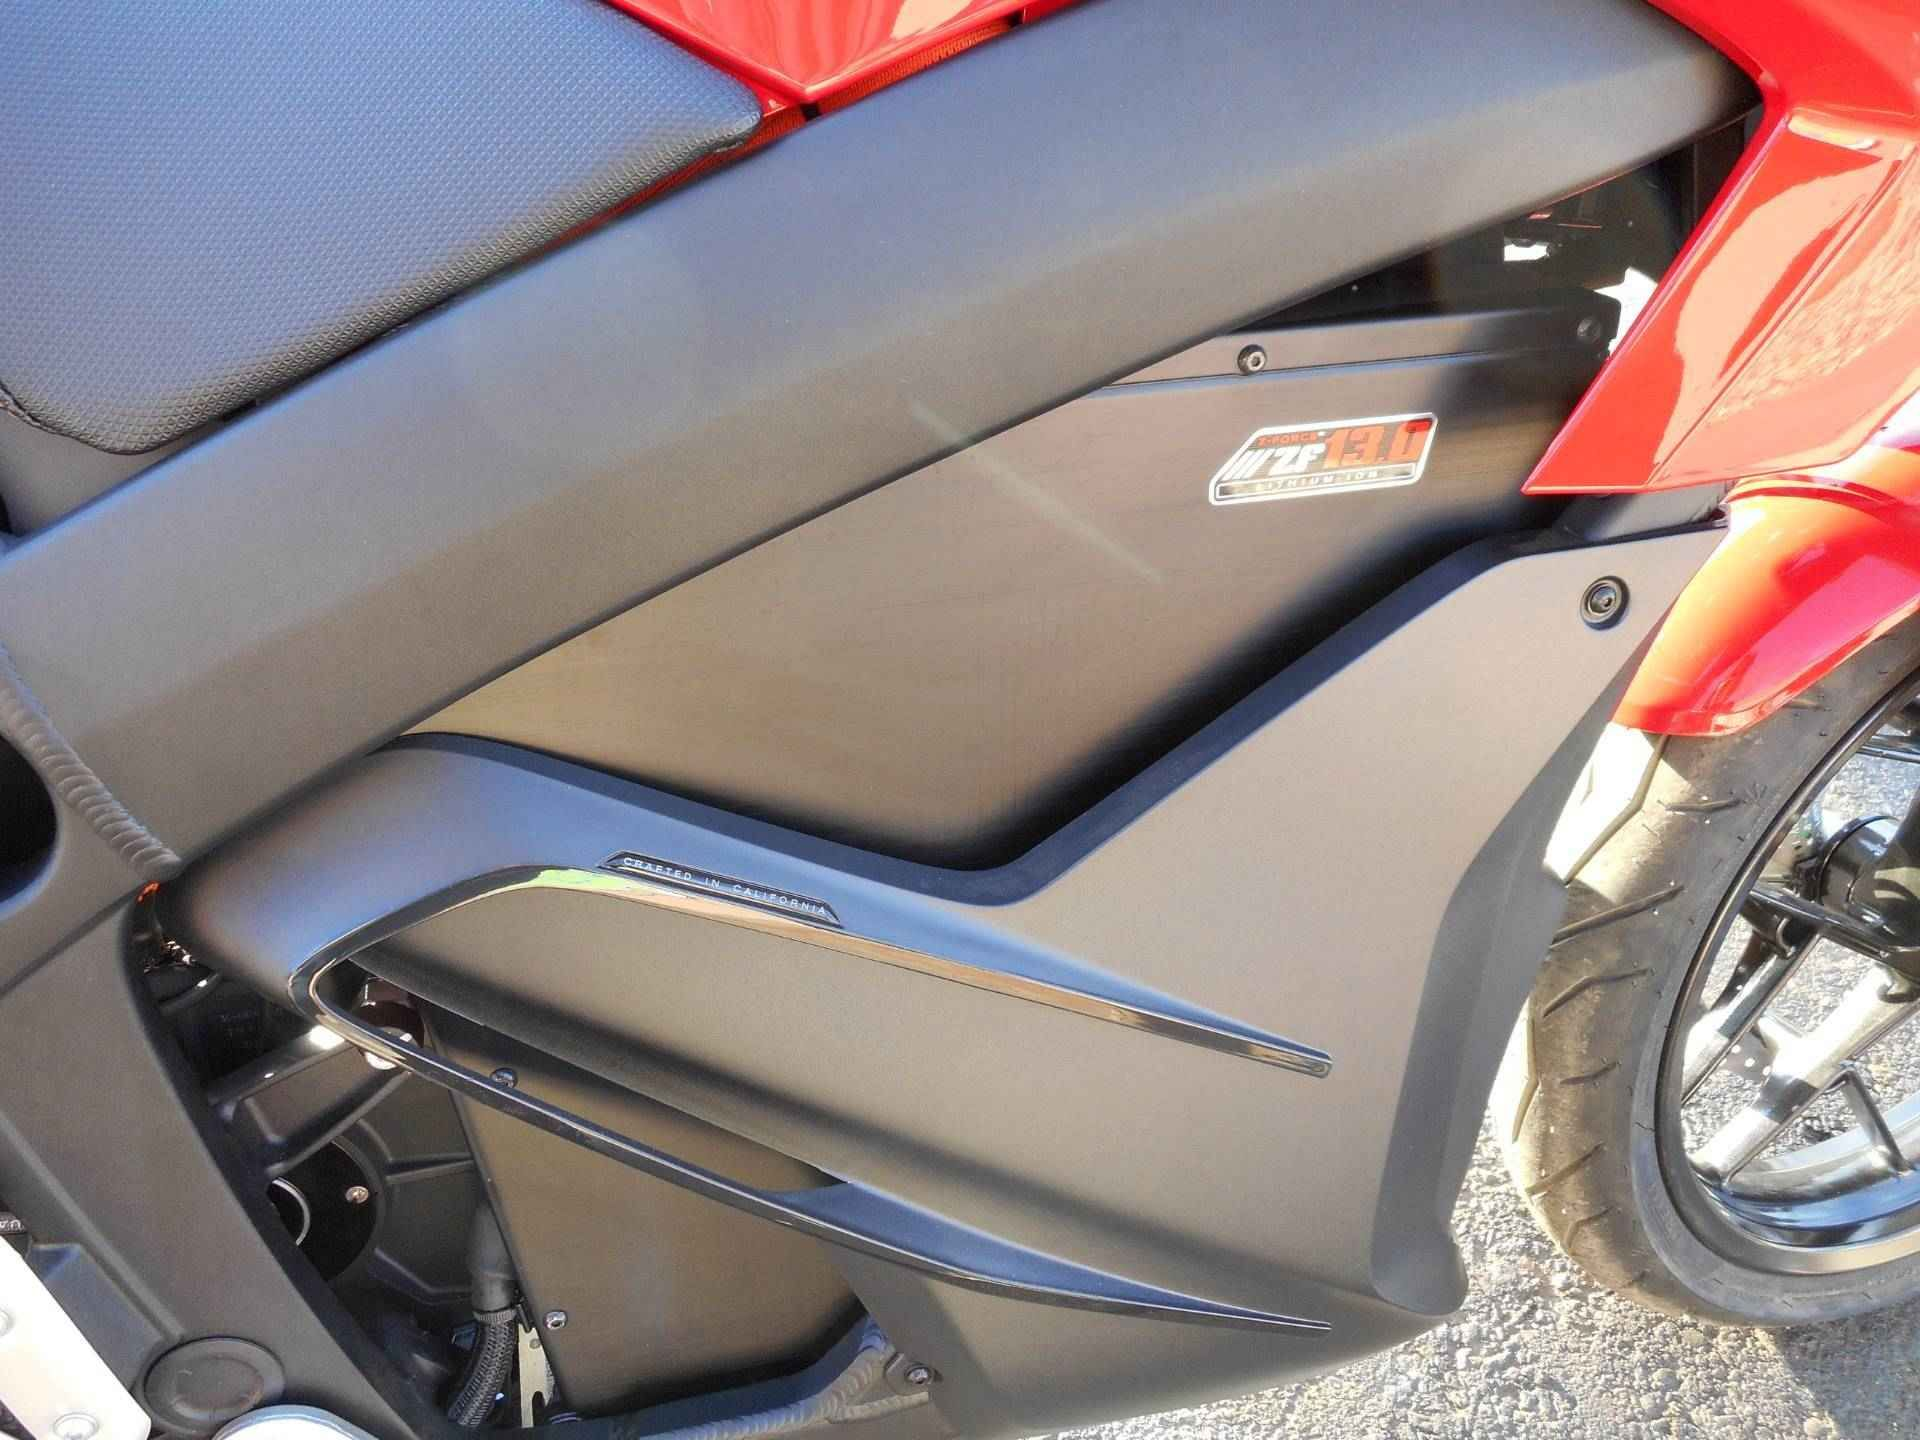 New 2017 Zero Motorcycles SR 13.0 ATVs For Sale in Colorado. Massive Torque, Stunning acceleration, Instantaneous response. The Zero SR amps up performance with a higher output (775 amp) controller and high temperature motor magnets. The result is stunning 116 ft-lb of torque, more than ANY 1,000cc sport bike. With incredible acceleration and higher sustaned top speeds, the Zero SR leaves gas-powered competition in the dust. This SR sports Zero's charge tank which allows the bike to…